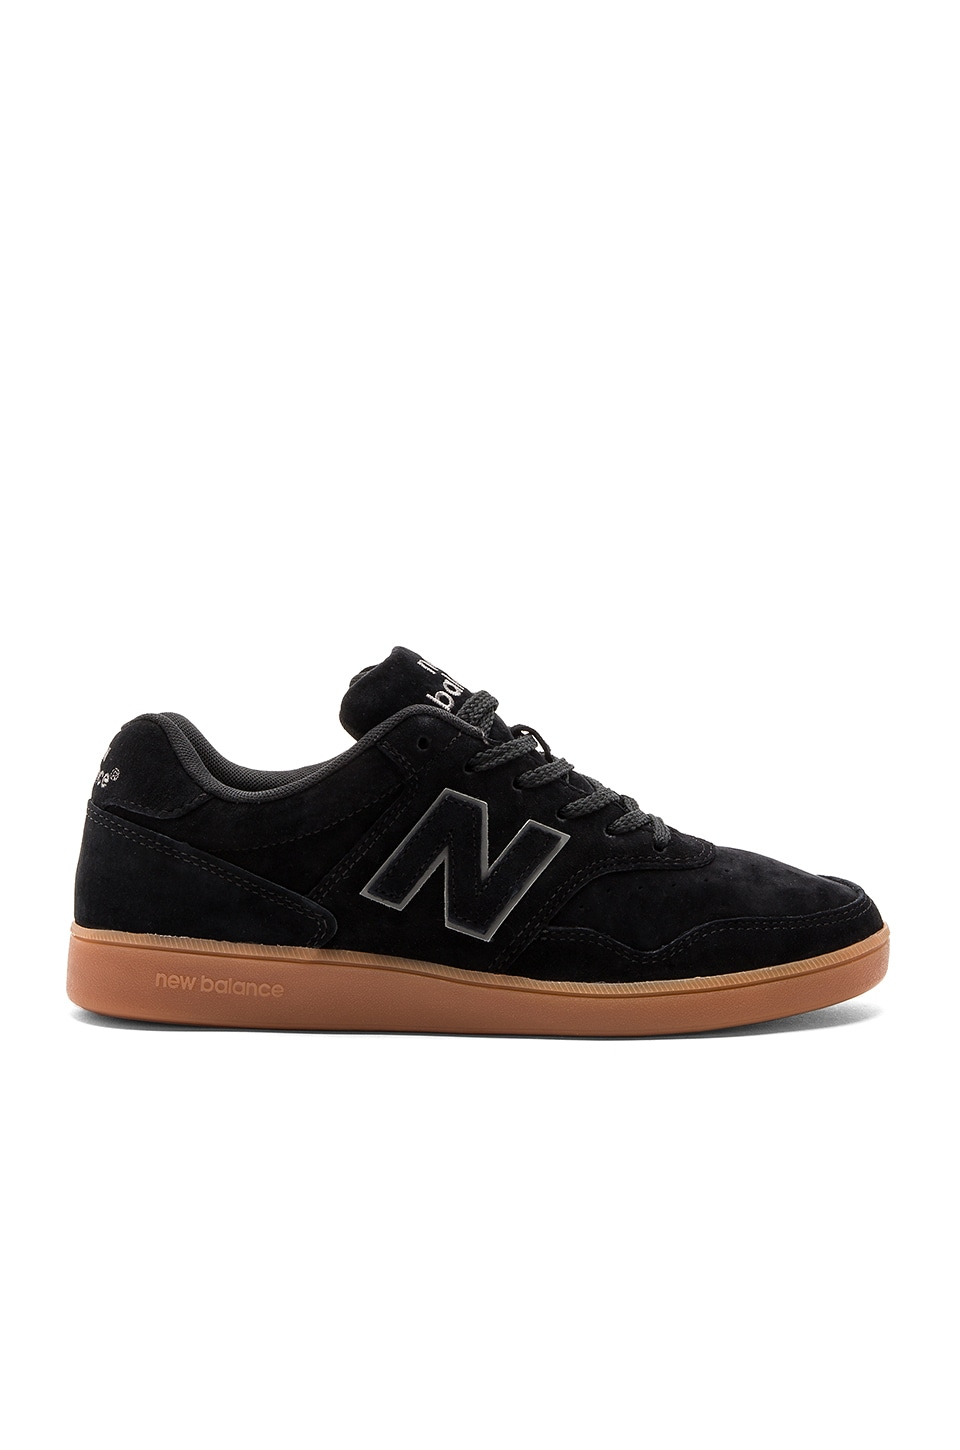 6dfe05a512d7c New Balance CT288 in Black & Gum | REVOLVE